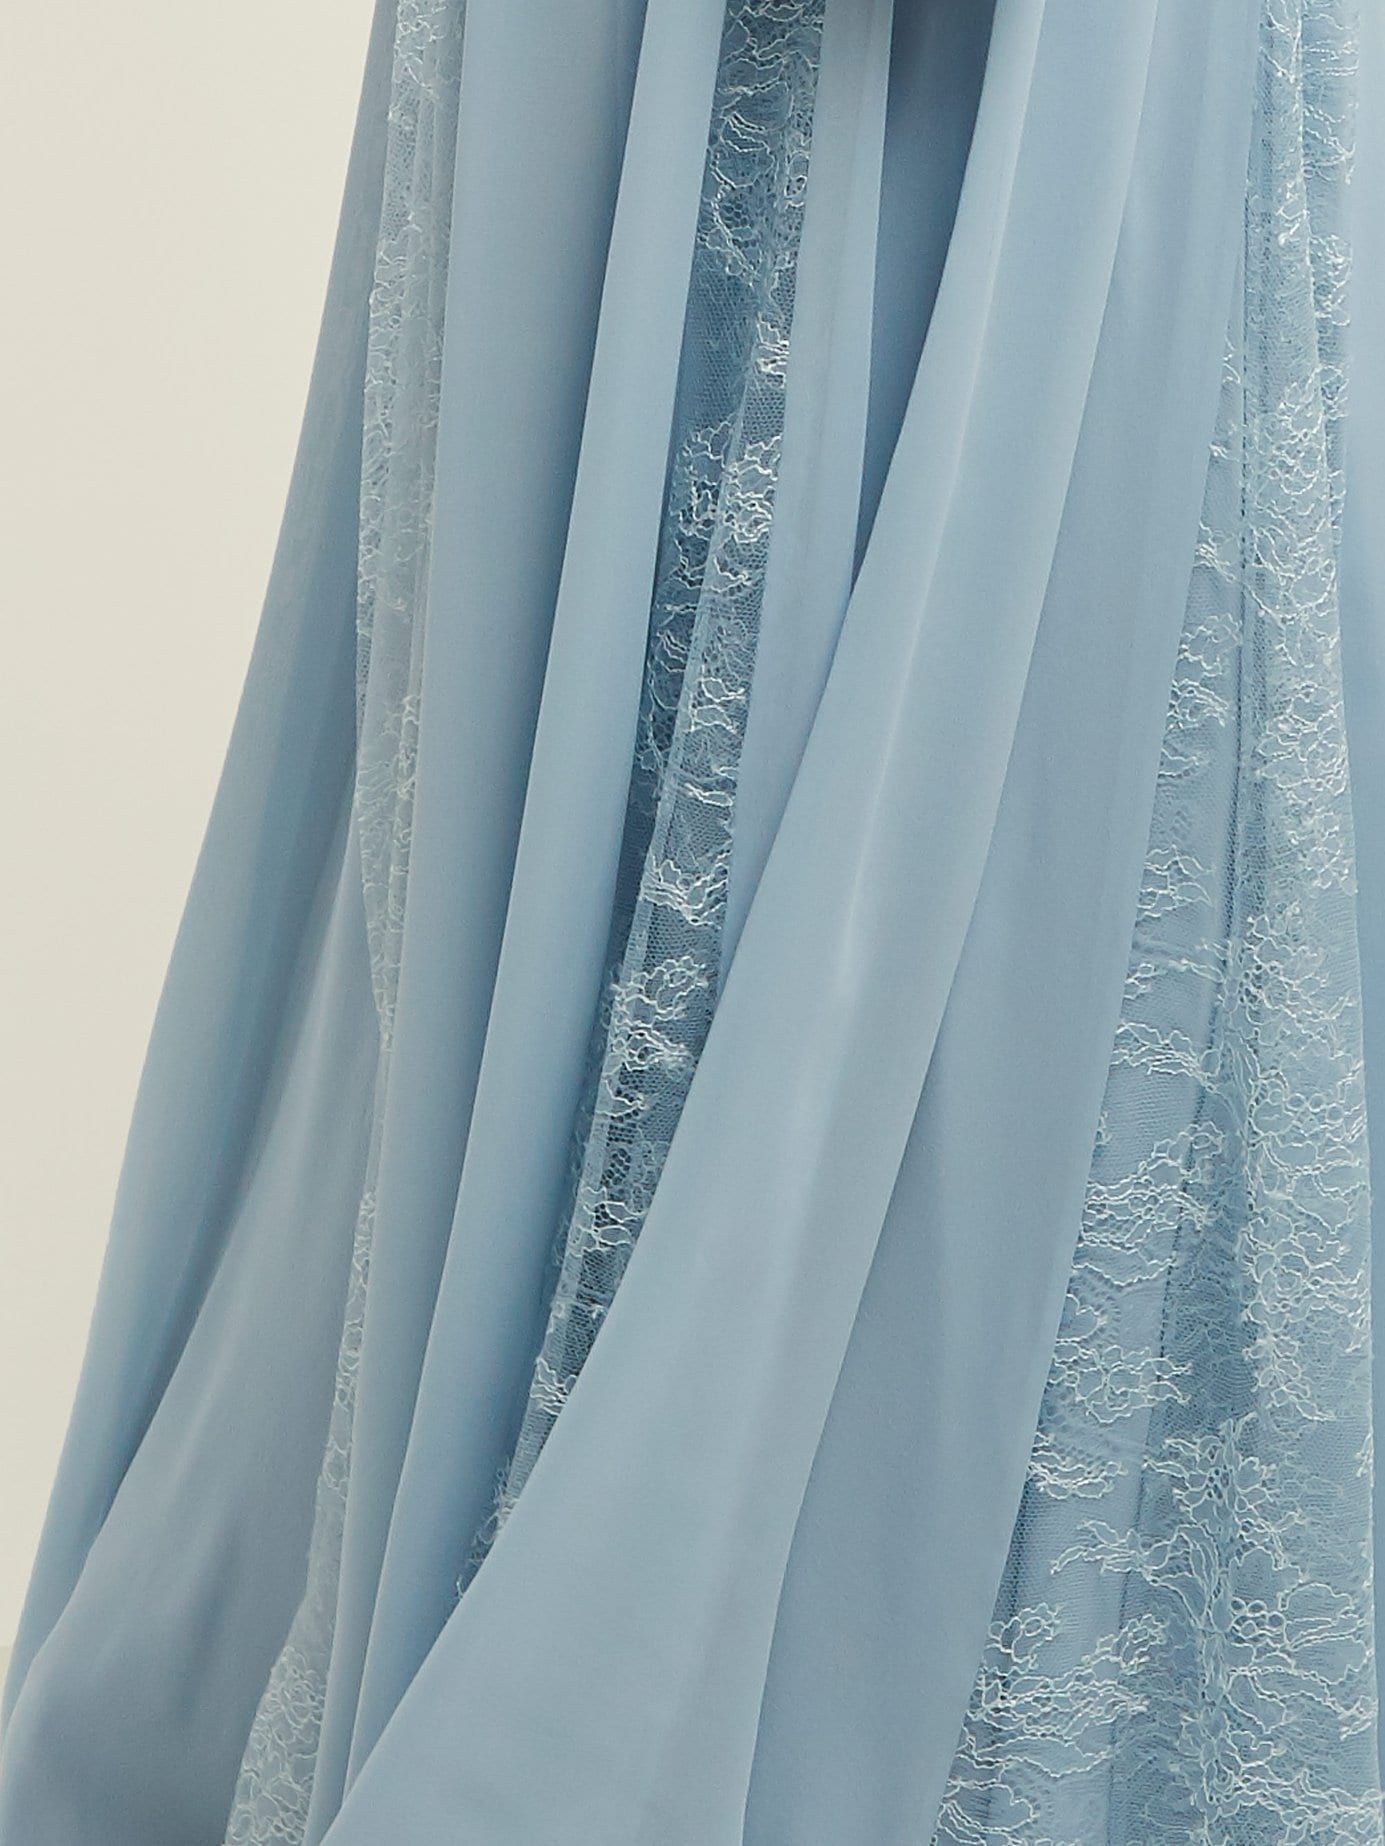 ELIE SAAB Lace Trimmed Silk Blend Evening Light Blue Gown - We ...